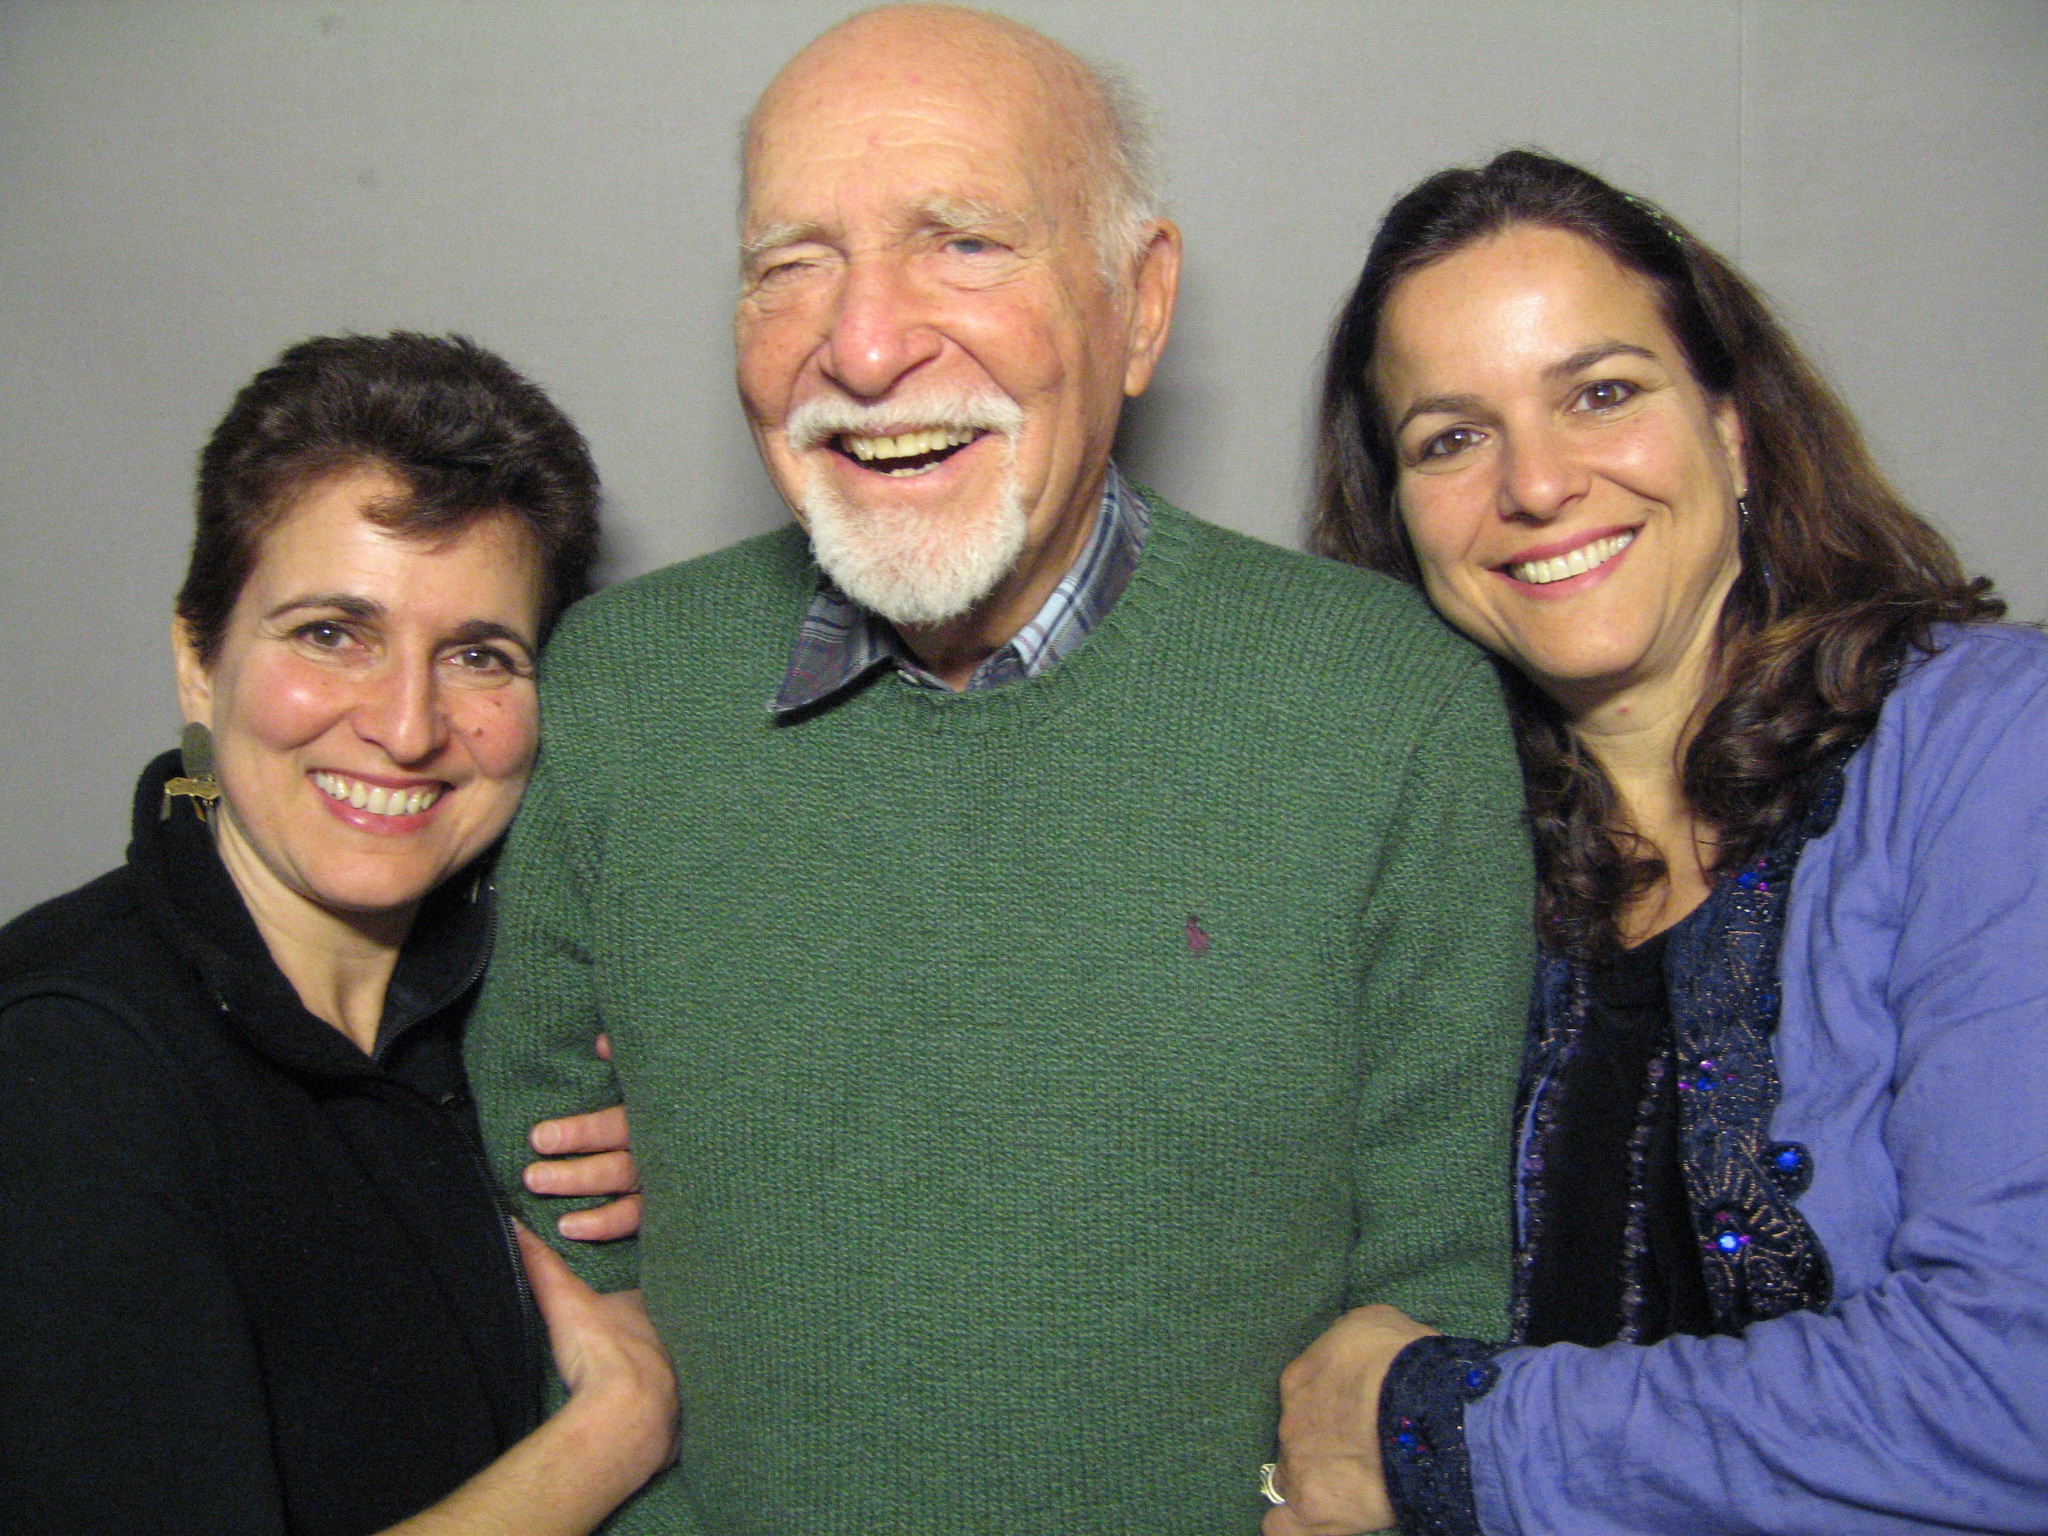 Ken Morganstern, Priya Morganstern, and Bhavani Jaroff